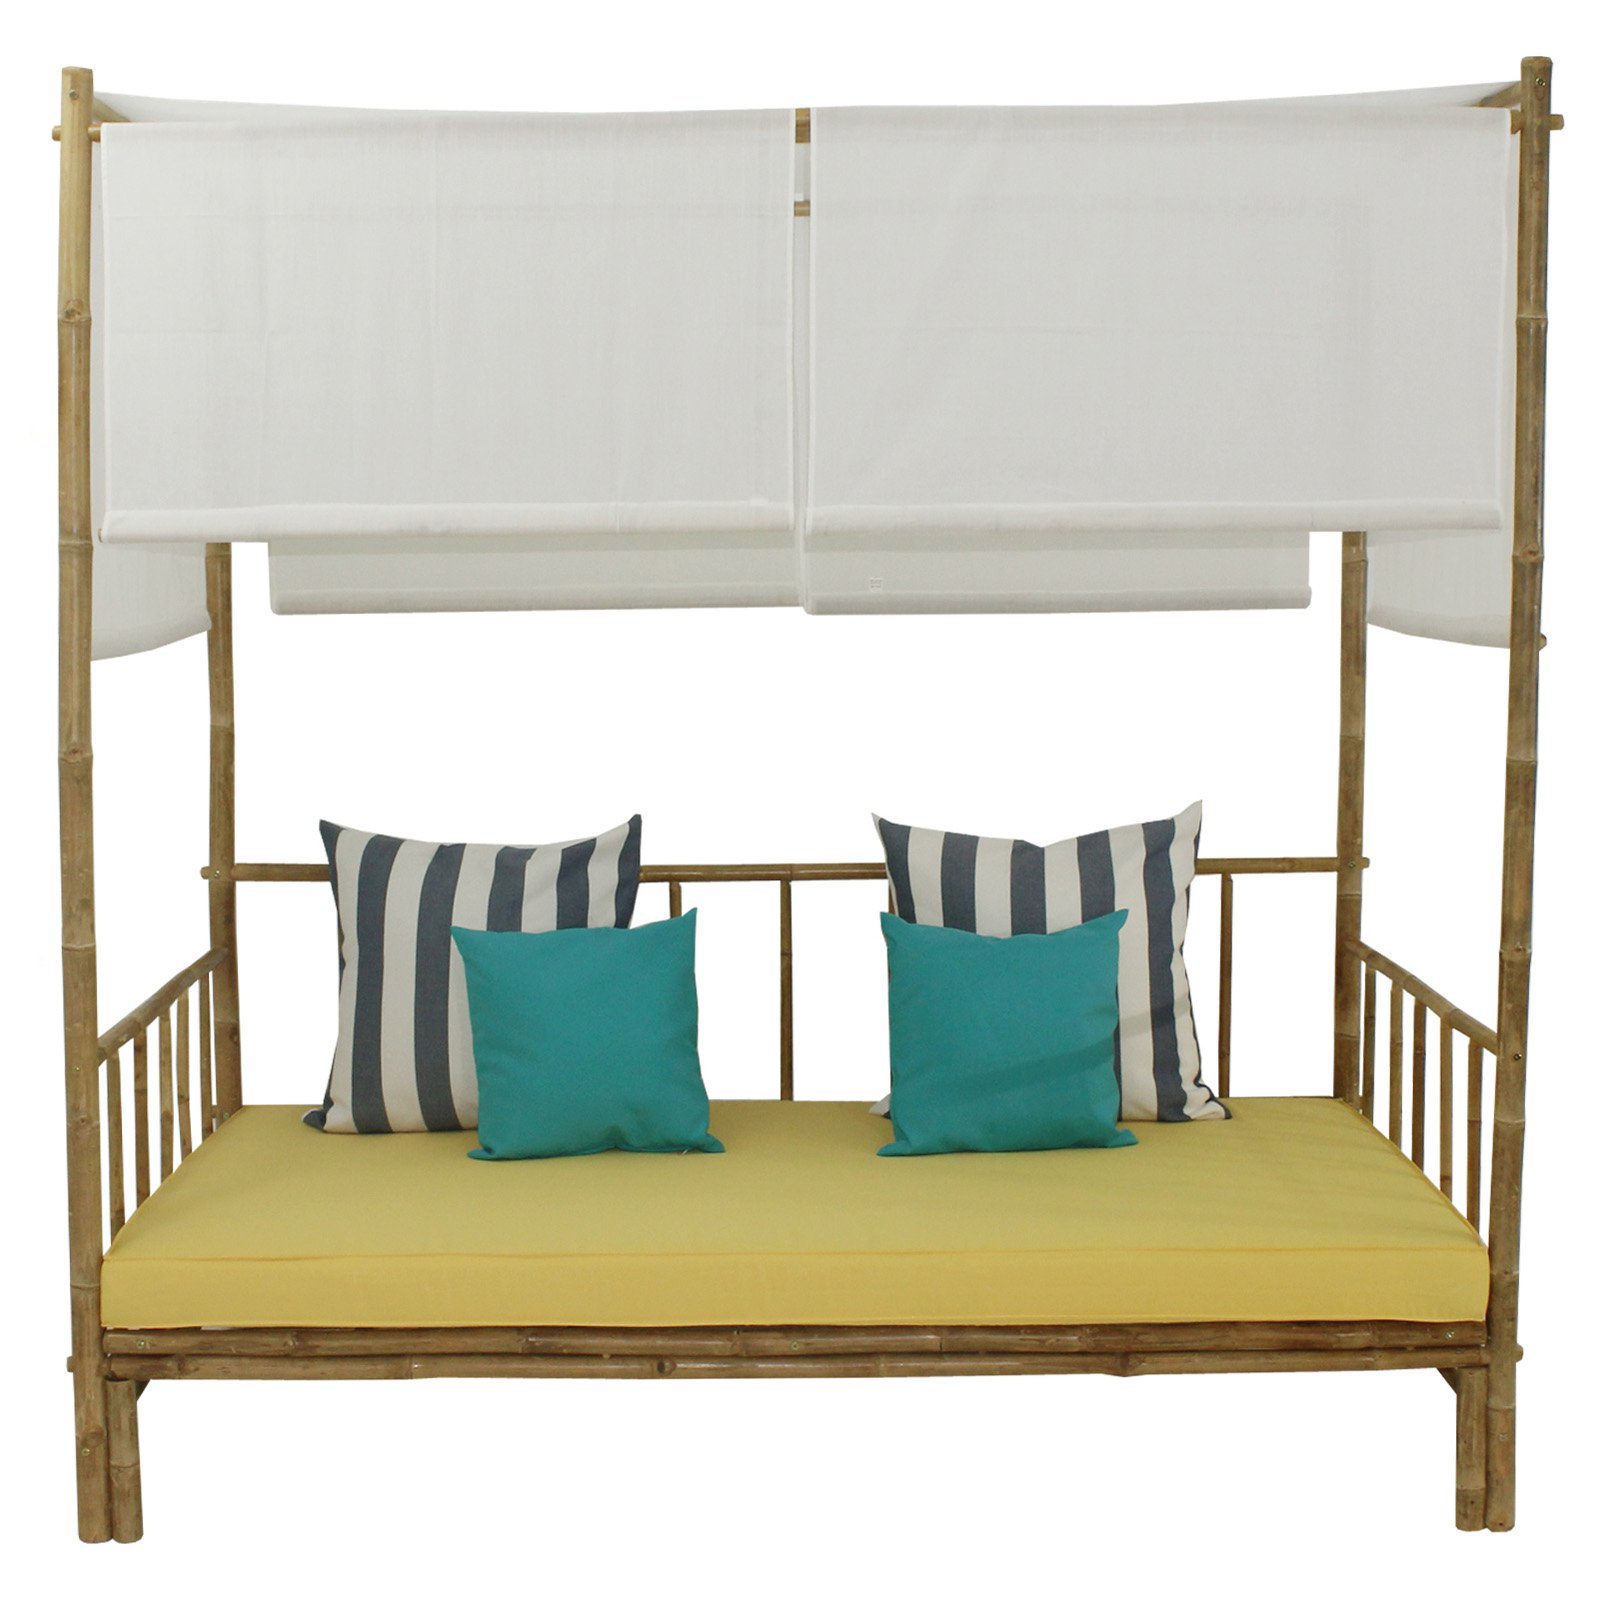 Current Statra Bamboo Daybed With Canopy Mattress And Throw Pillows For Bamboo Daybeds With Canopy (View 11 of 25)